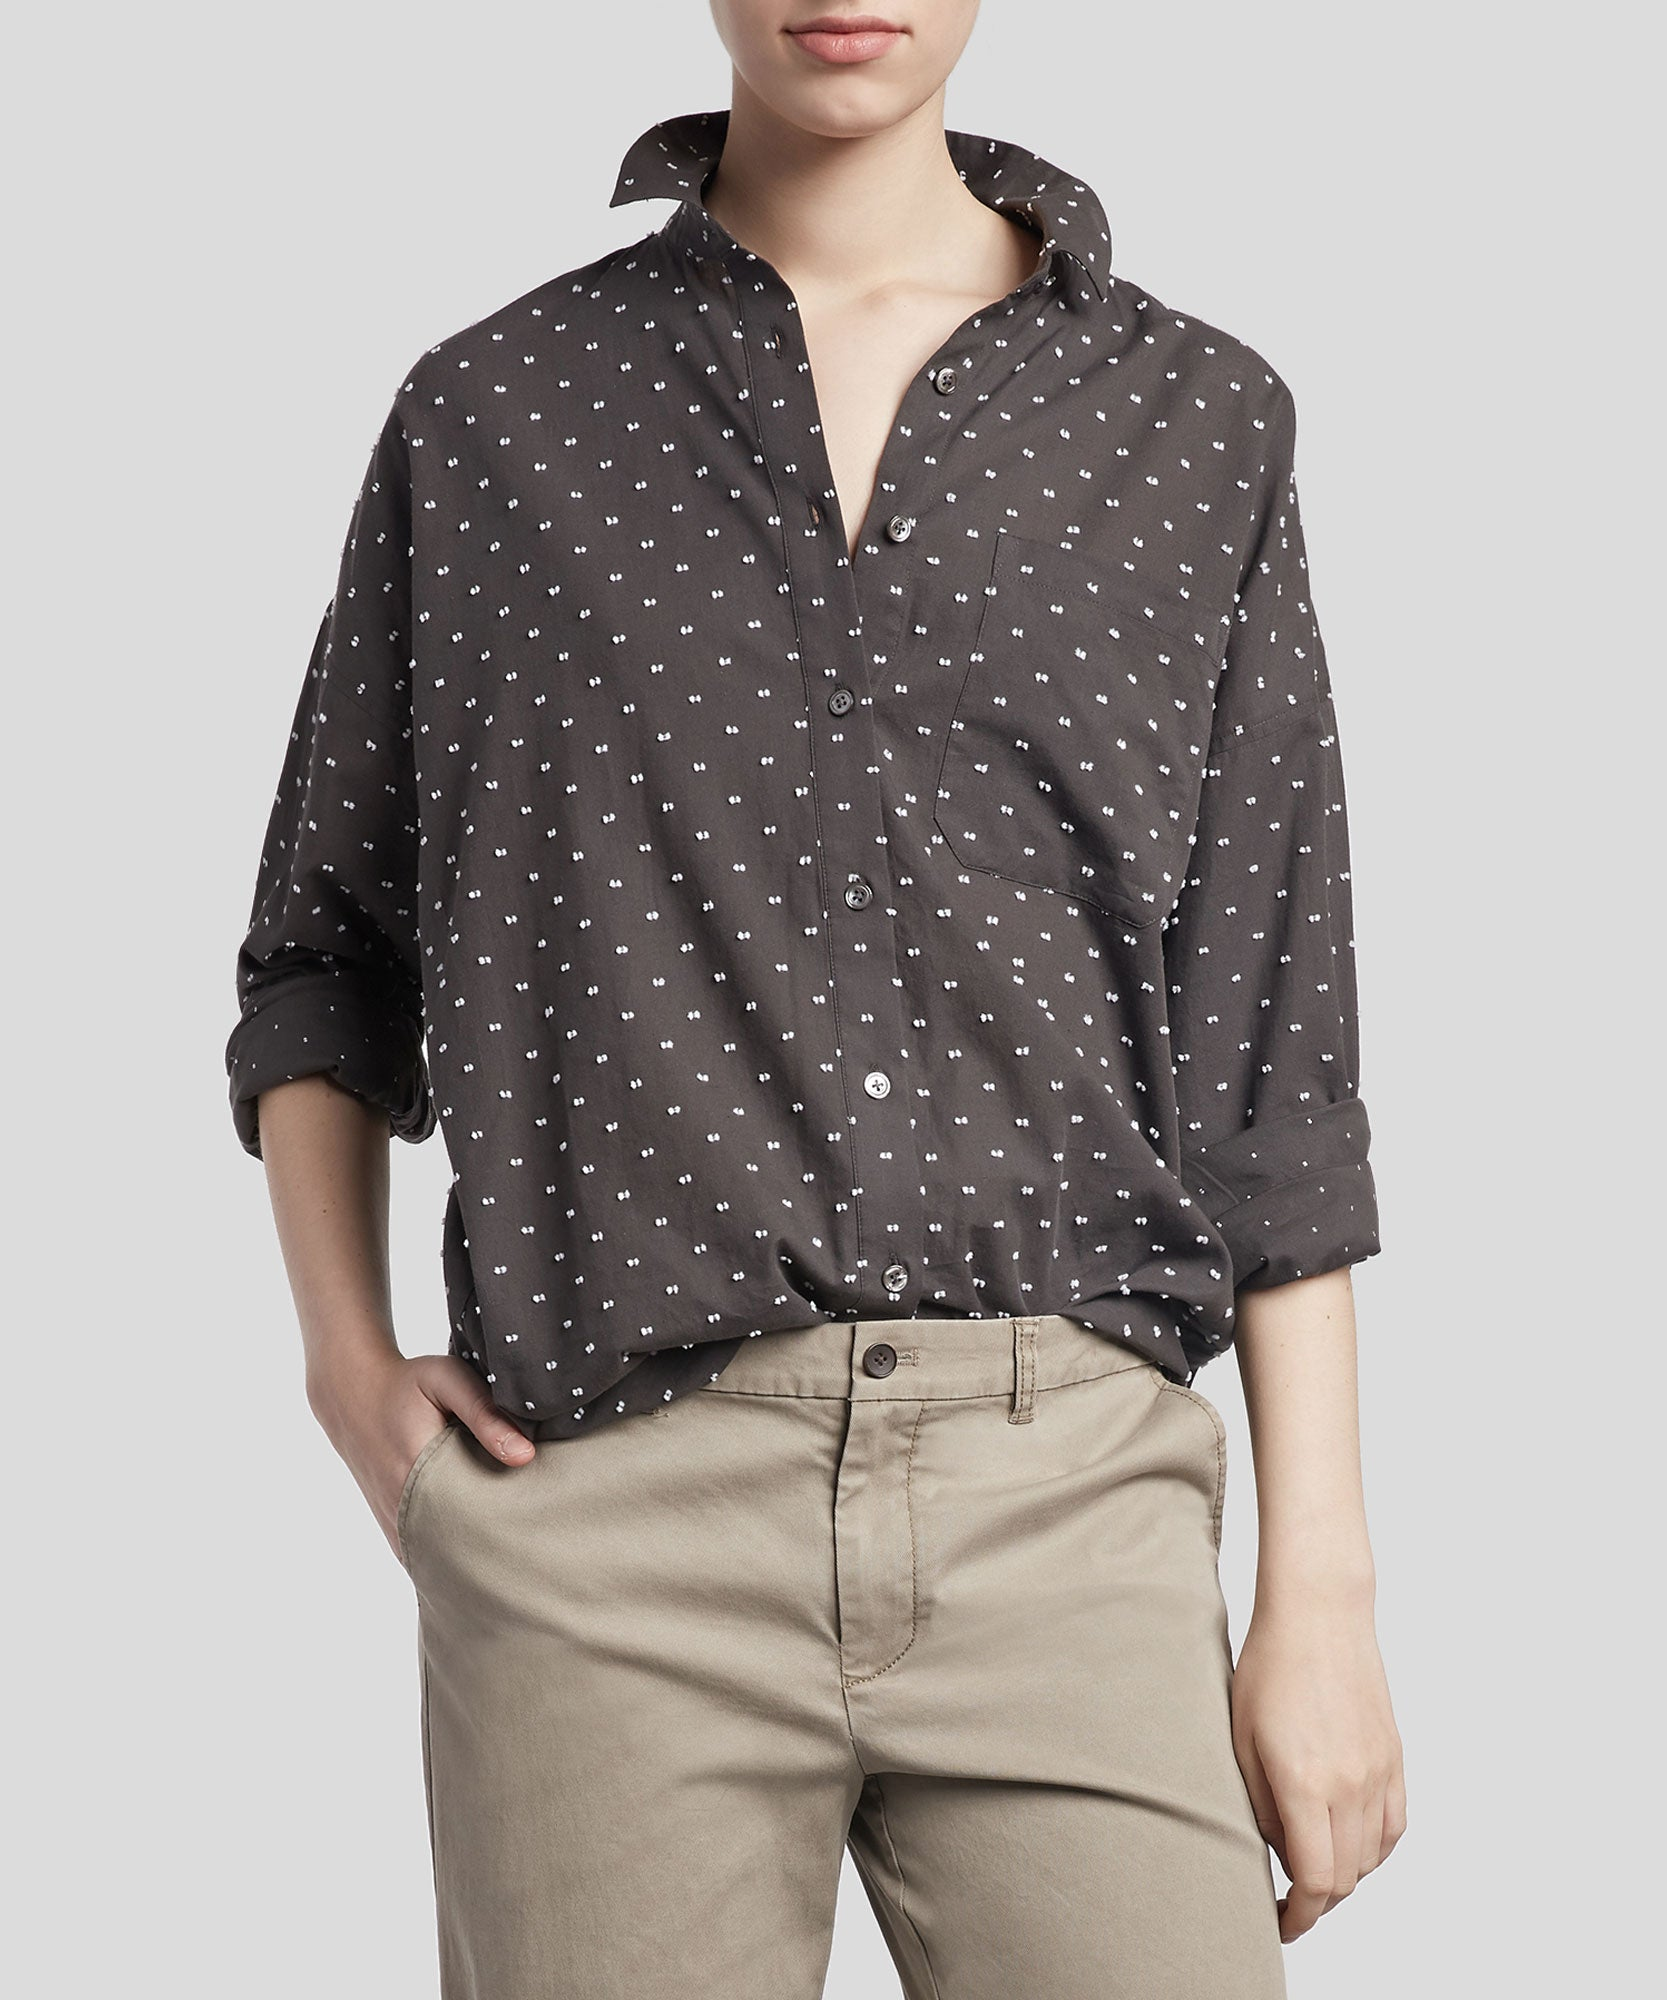 Pavement Combo Clipped Dot Boyfriend Shirt - Women's Button Down Shirt by ATM Anthony Thomas Melillo